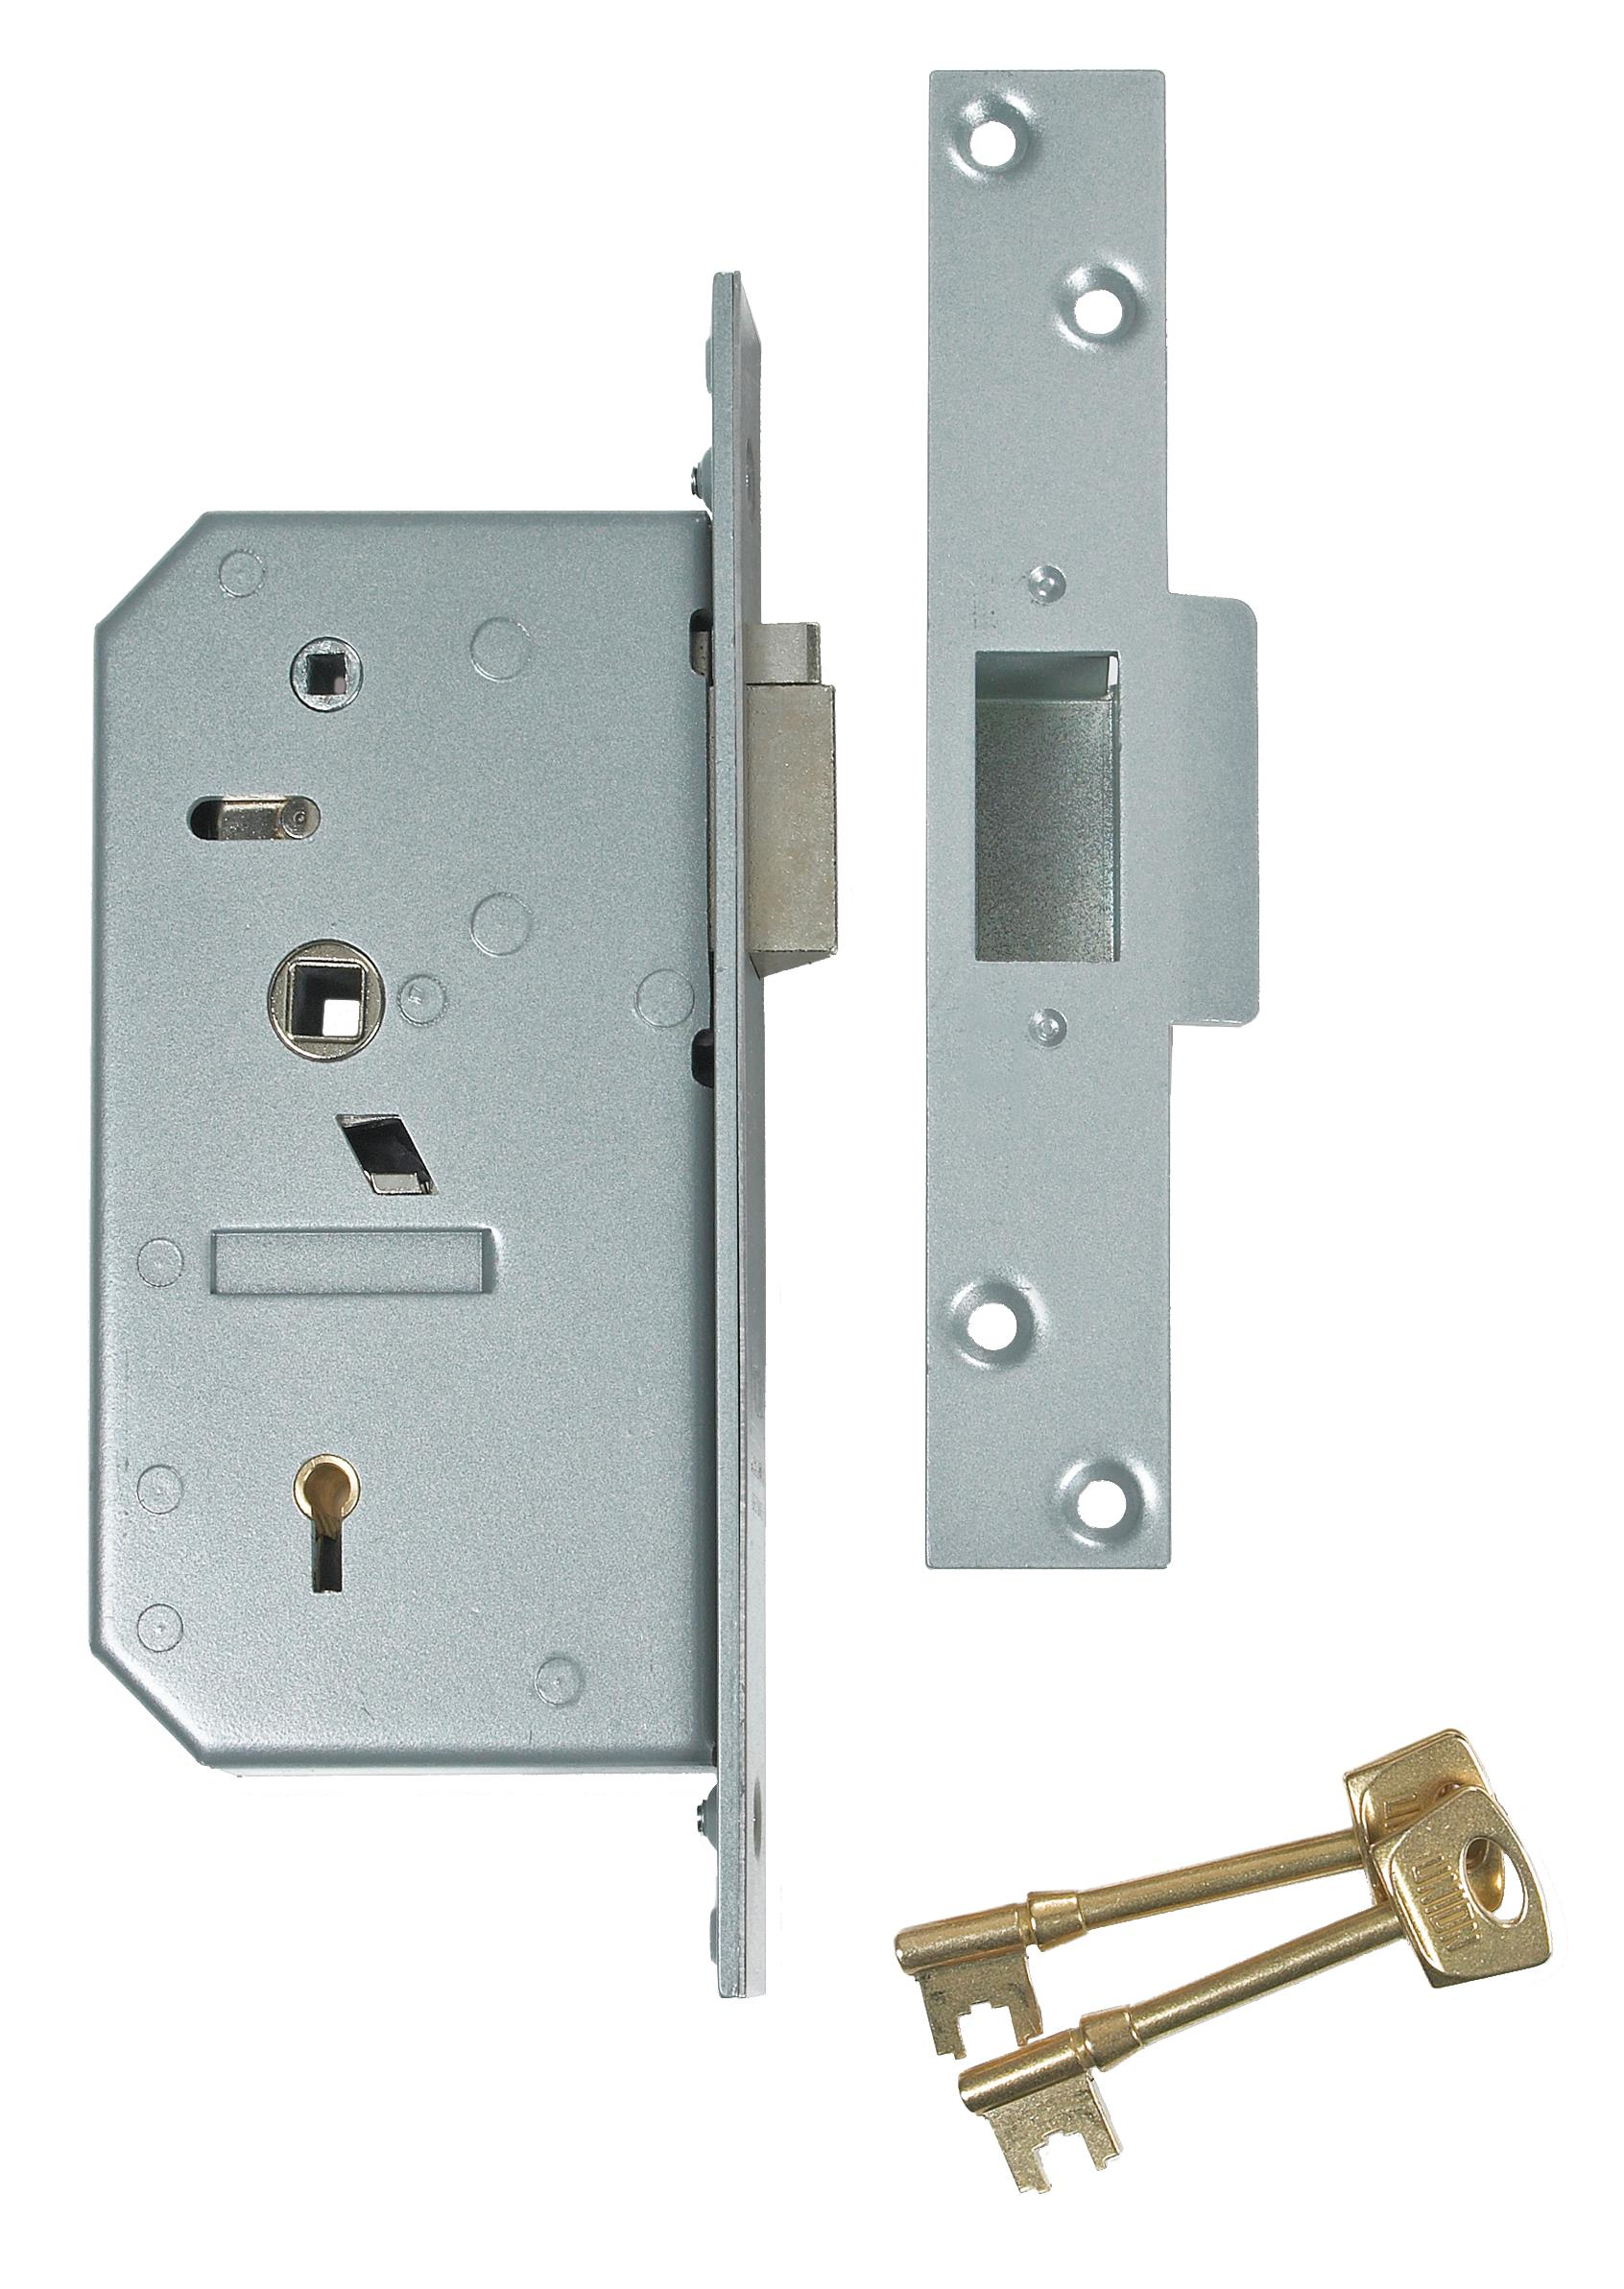 3R35 / 3R35X - 5 Detainer Deadlocking Latch